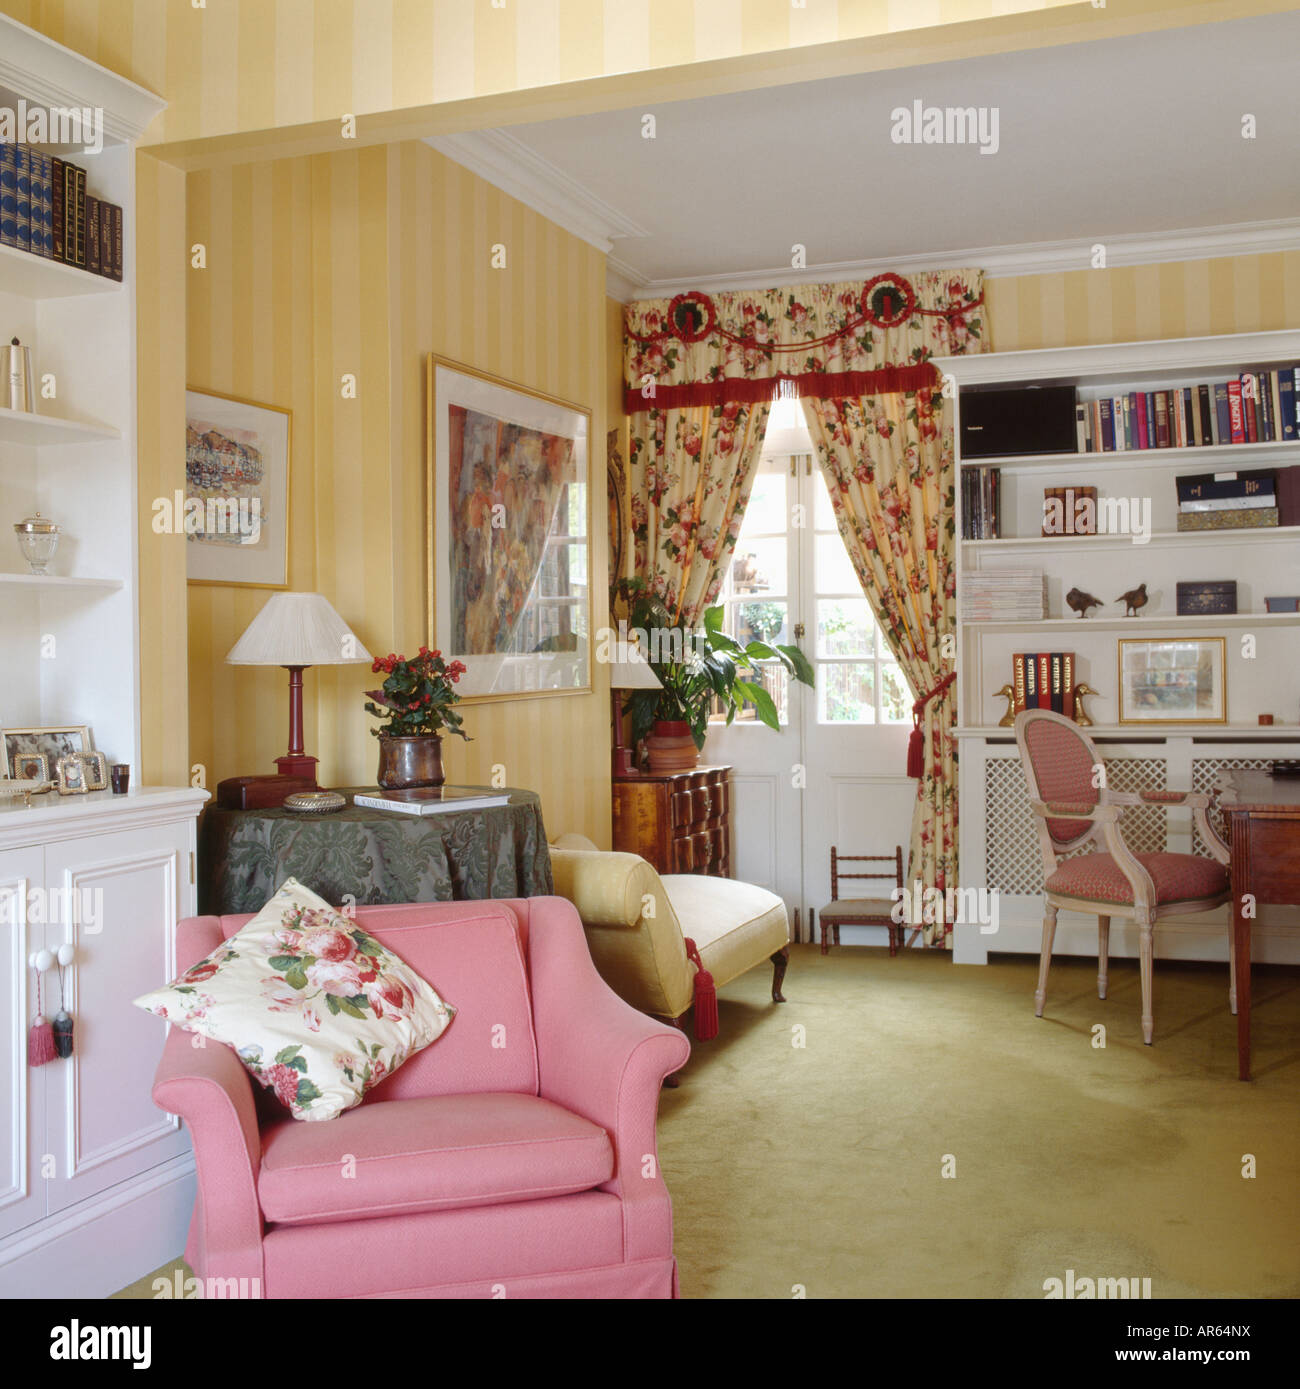 Red patterned curtains living room - Stock Photo Striped Yellow Wallpaper And Pink Armchair In Living Room With Patterned Red Curtains And Pale Green Carpet